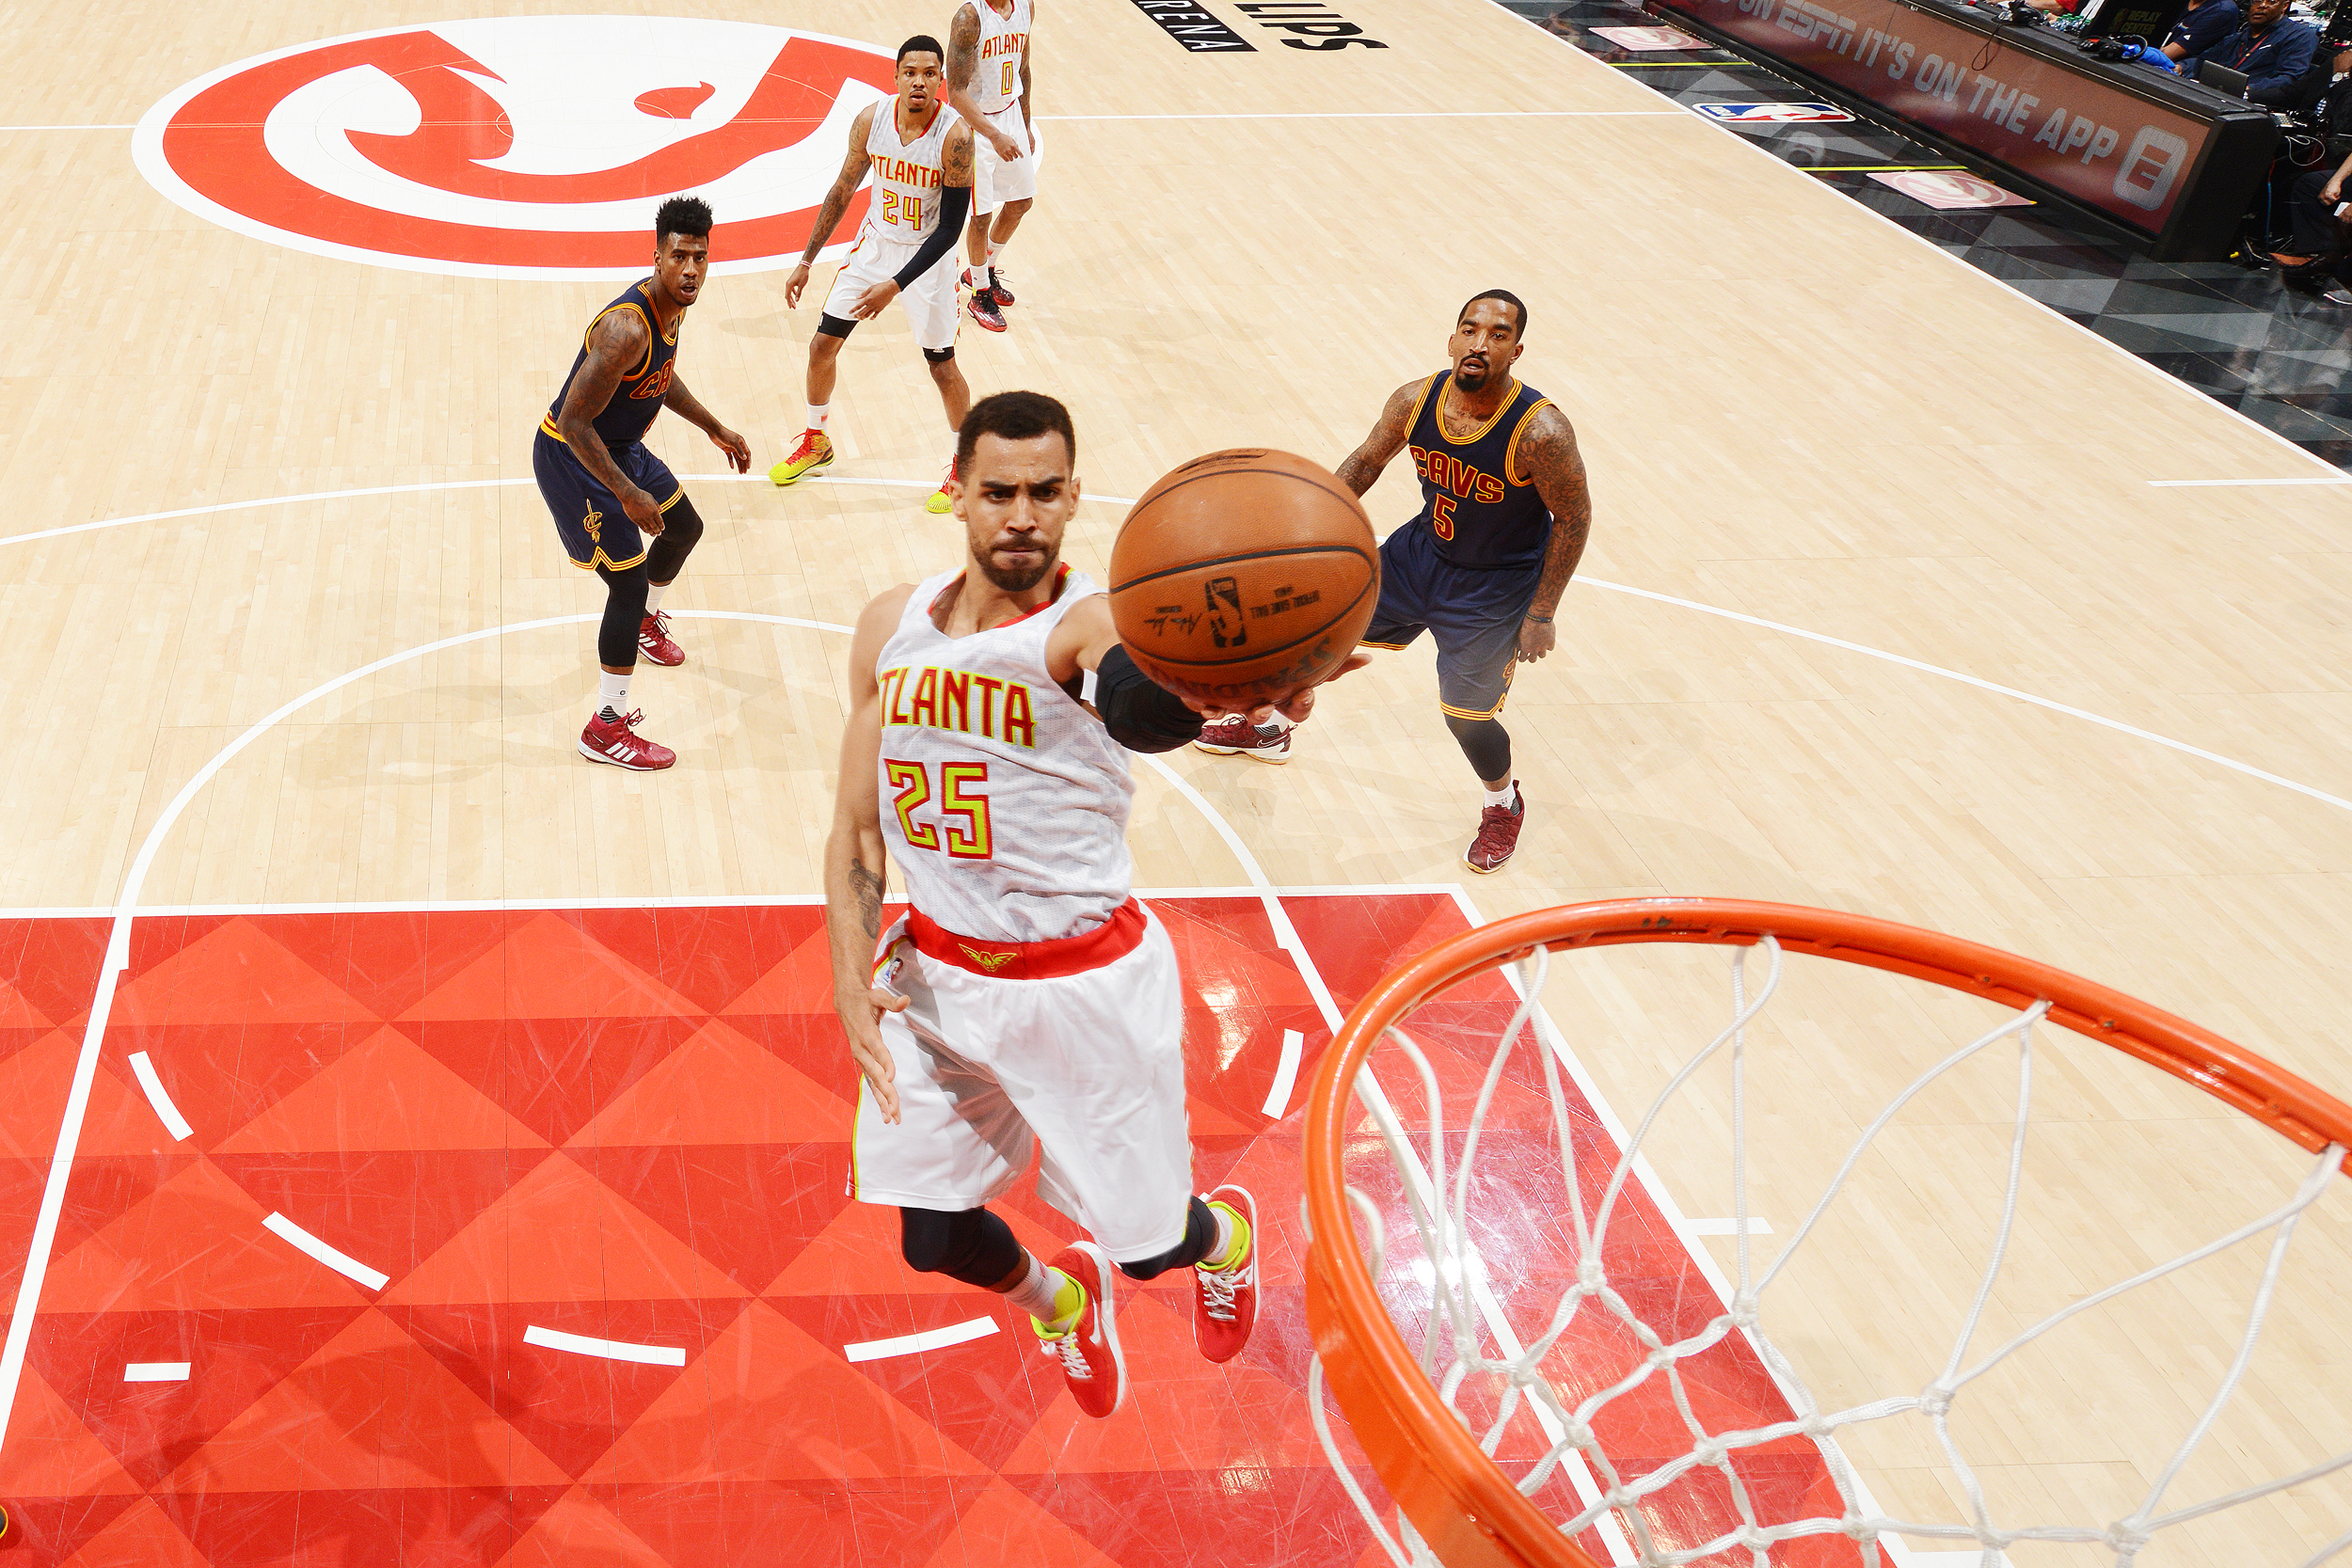 Thabo Sefolosha #25 of the Atlanta Hawks goes up for the layup against the Cleveland Cavaliers during the Eastern Conference Semifinals Game Four on May 8, 2016 at The Philips Arena in Atlanta Georgia.